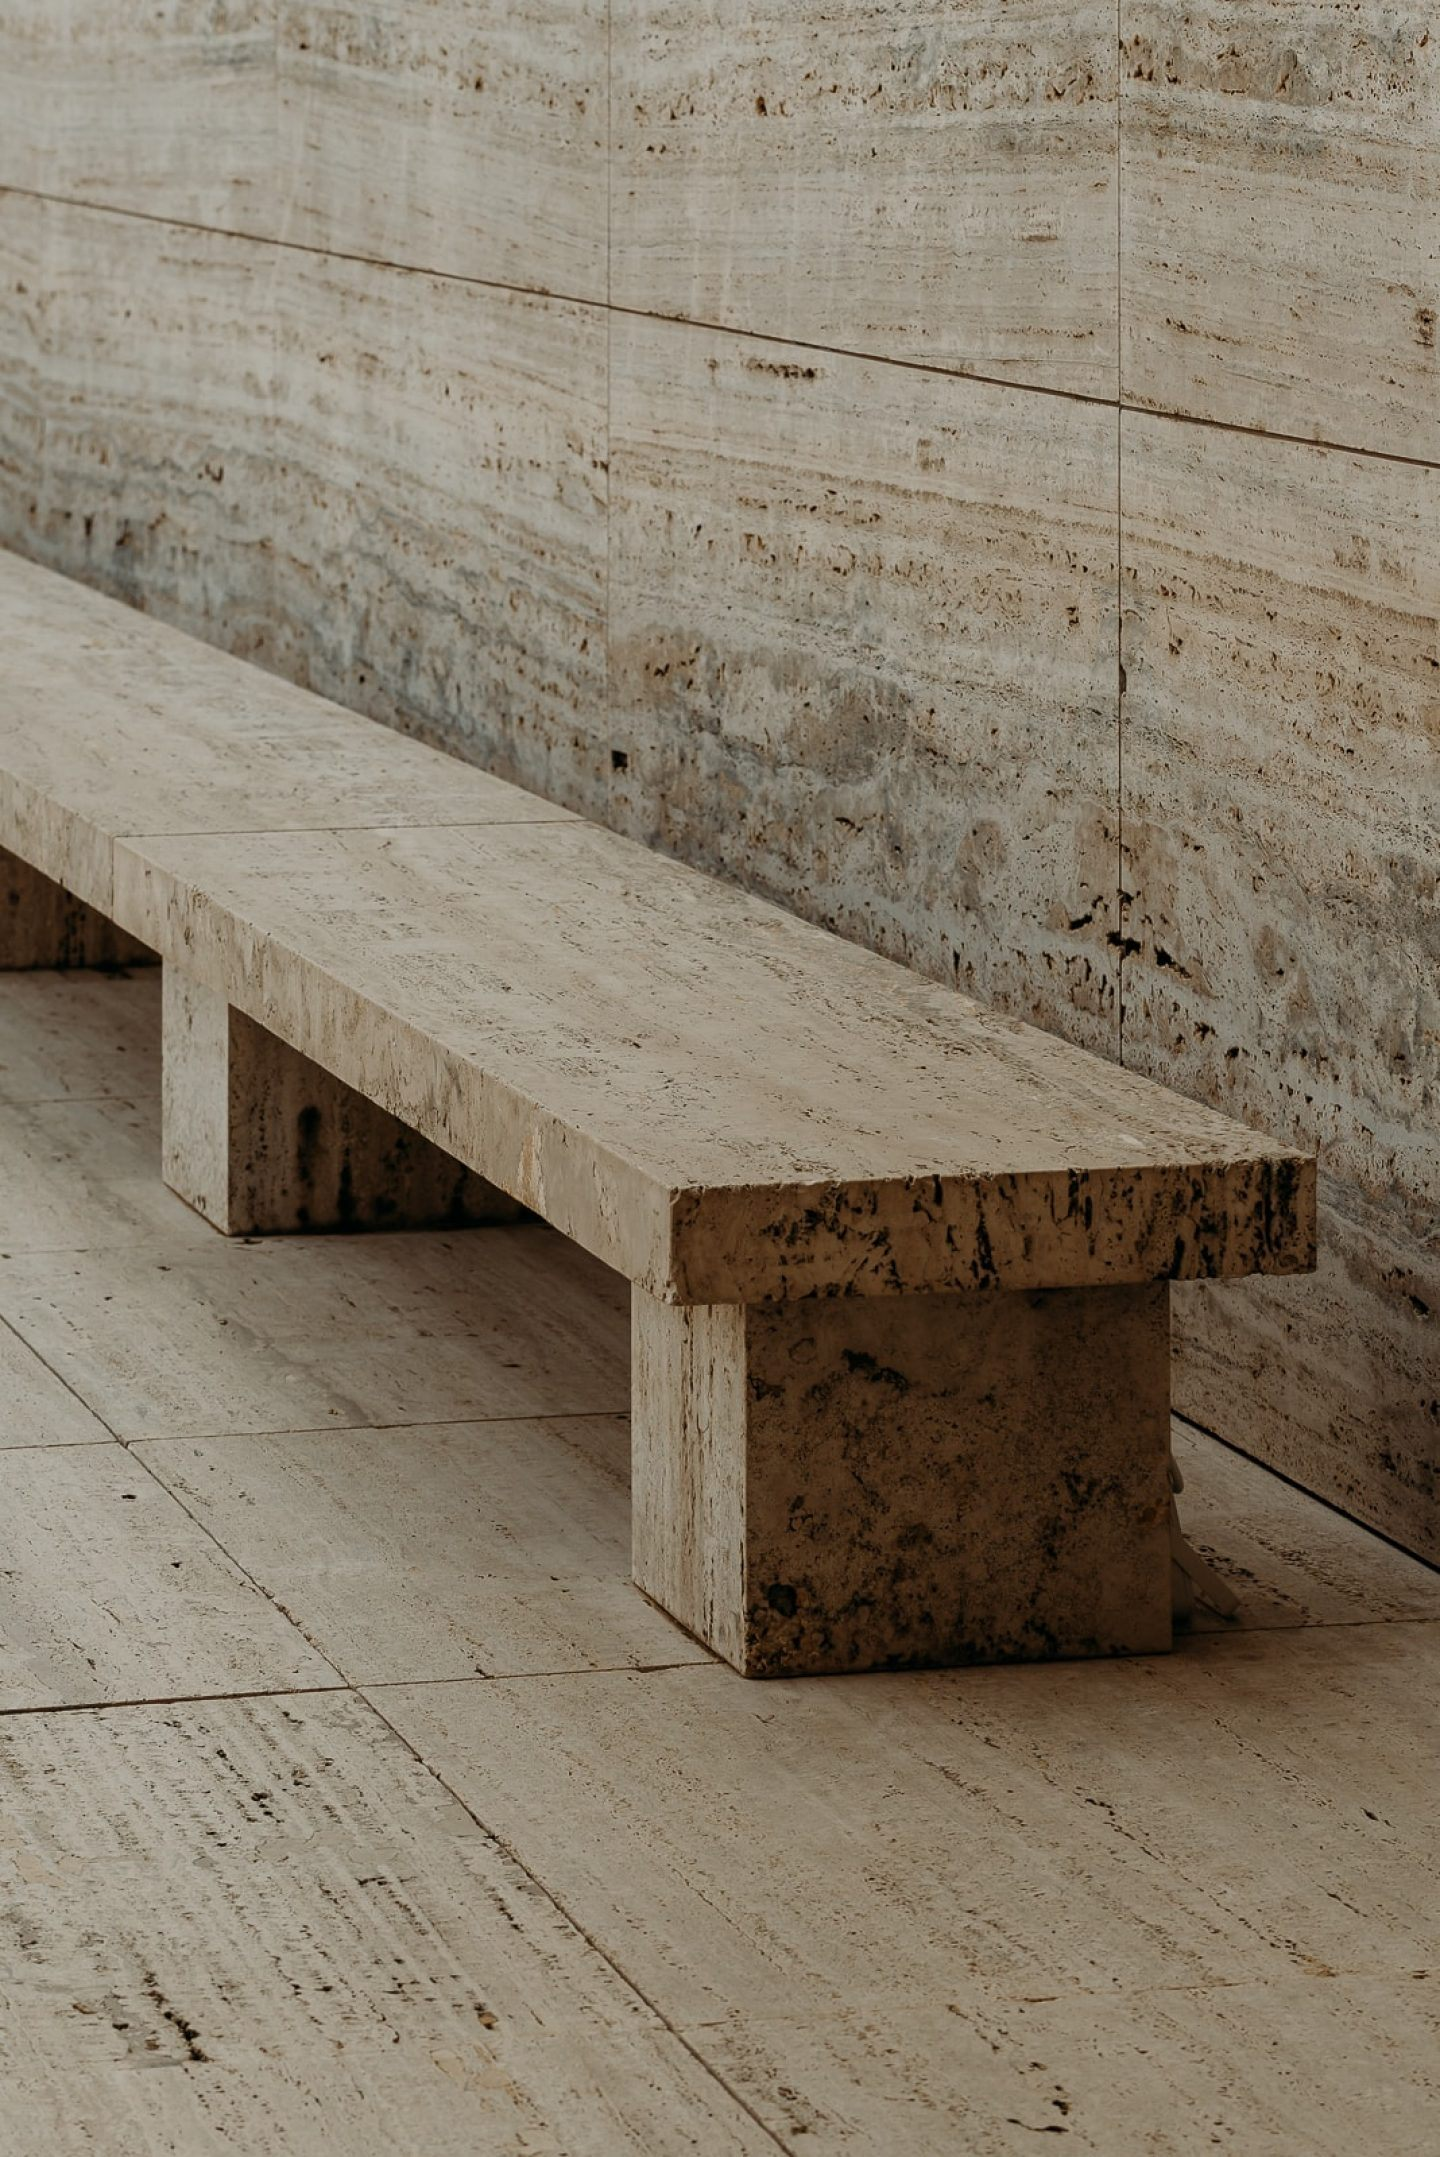 IGNANT-Architecture-Barcelona-Pavilion-Ludwig-Mies-Van-Der-Rohe-Maciej-Jezyk-018